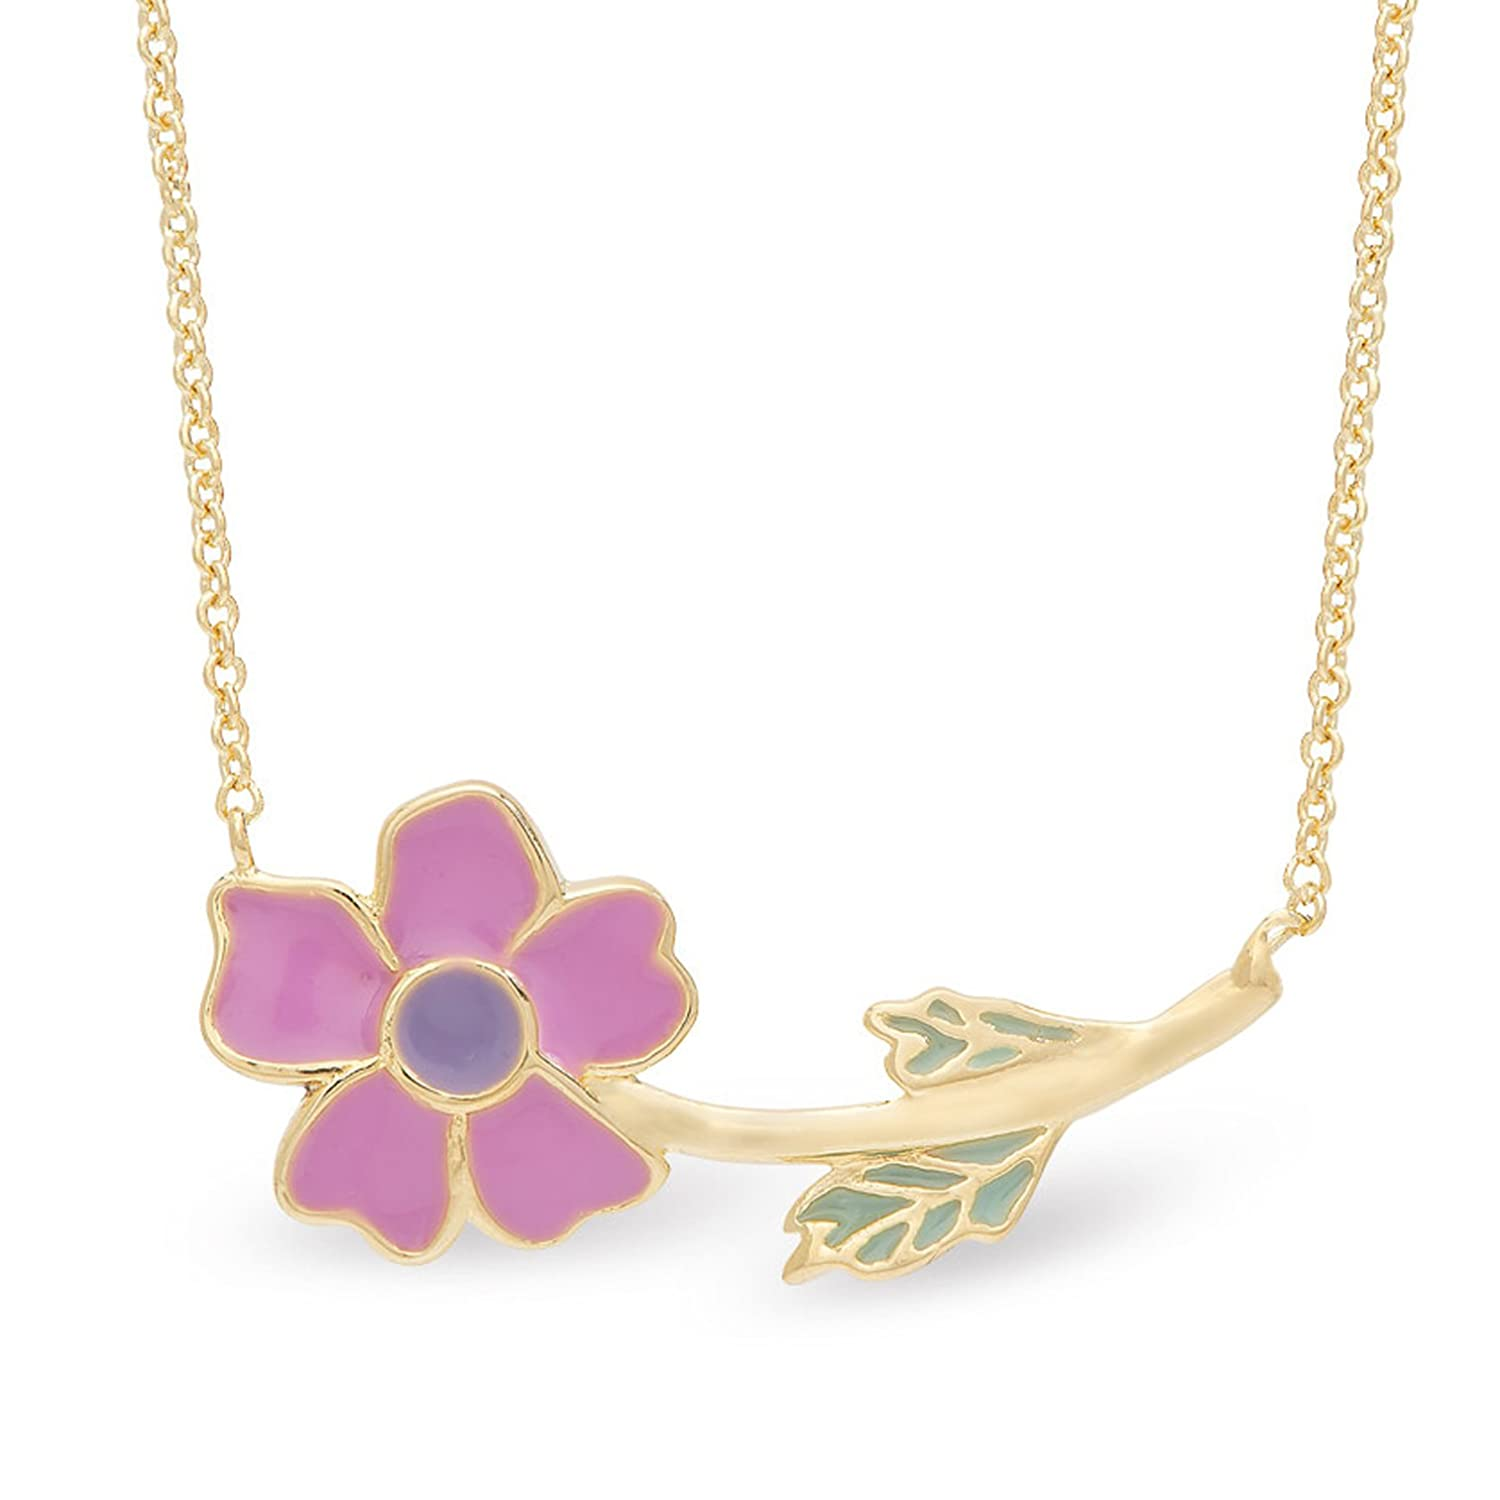 Gold Plated with Hand Painted Pink Enamel Flower Necklace By Lily Nily Necklace for Girls